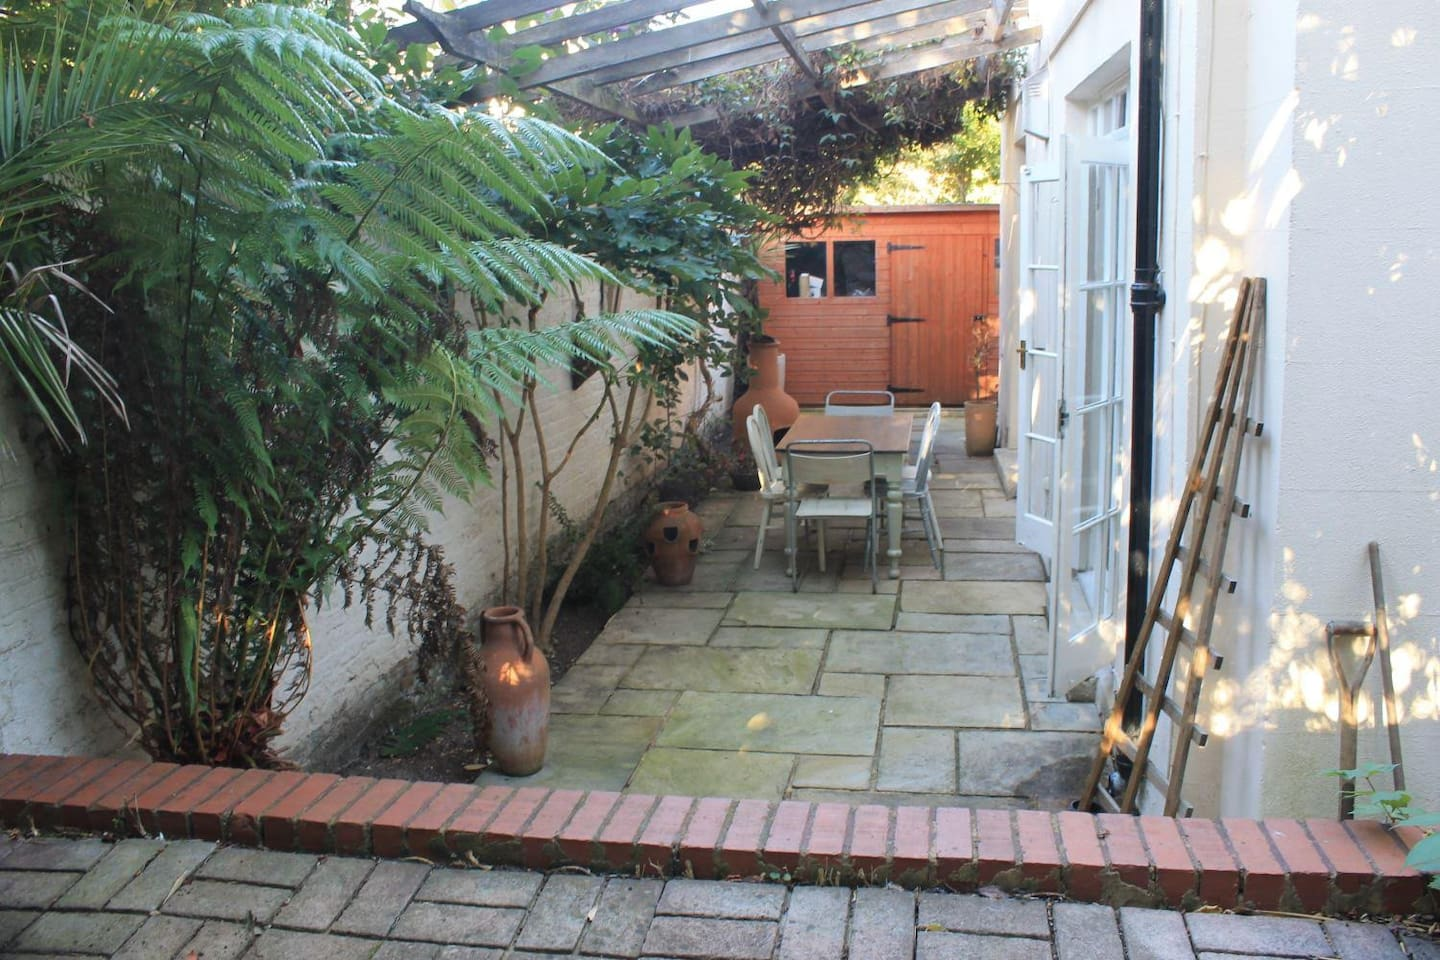 Private patio Garden with step up to cement mezzanine